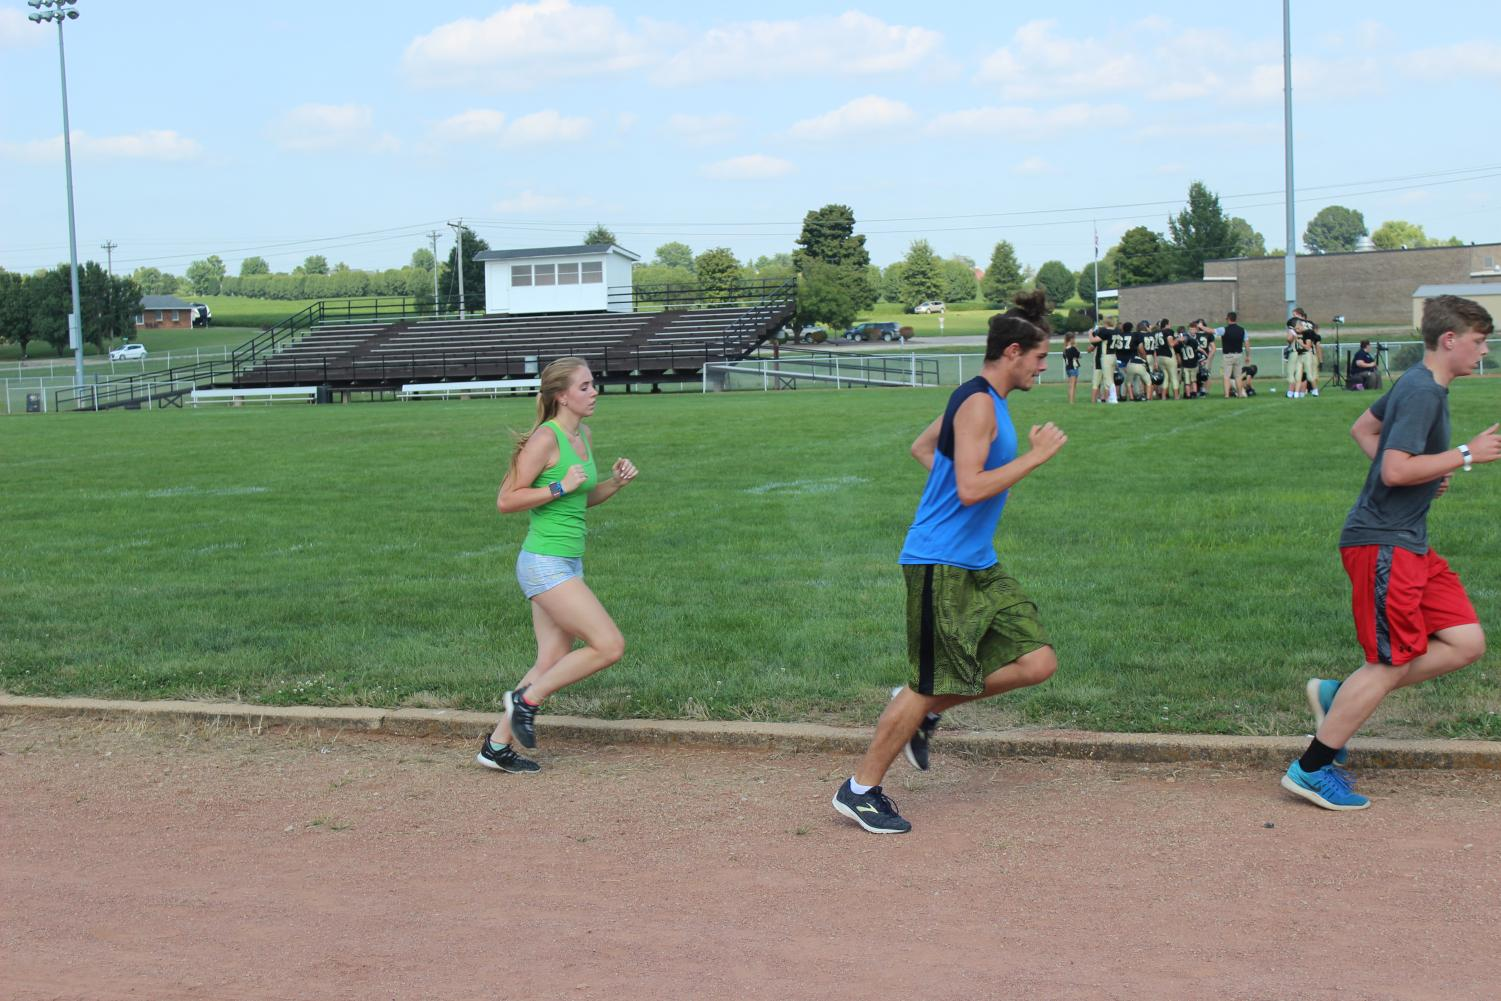 (left to right) Kristen Mungle, Dwayne Kemper and Clayton Martin putting in hard work at their practice.